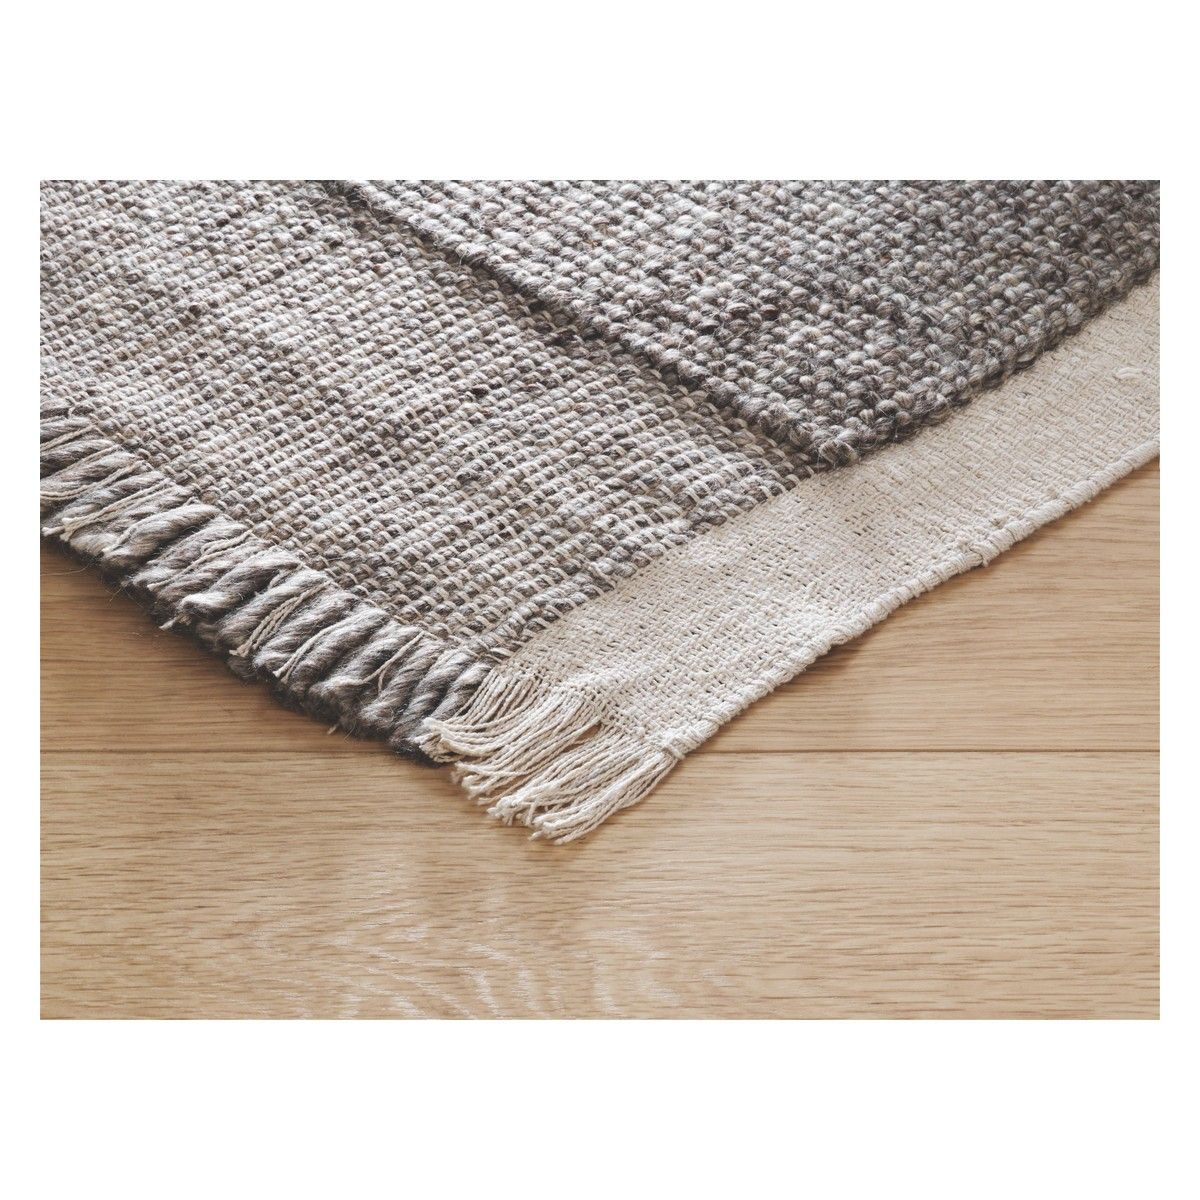 Bortollo Medium Cream Wool Blend Rug 140 X 200cm Now